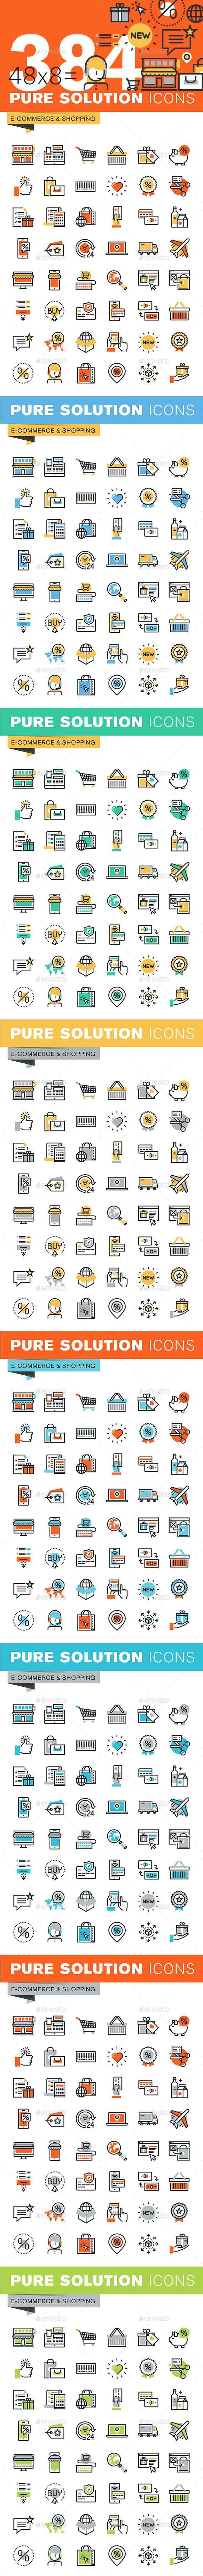 Set of Thin Line Flat Design Icons of E-Commerce and Shopping - Icons